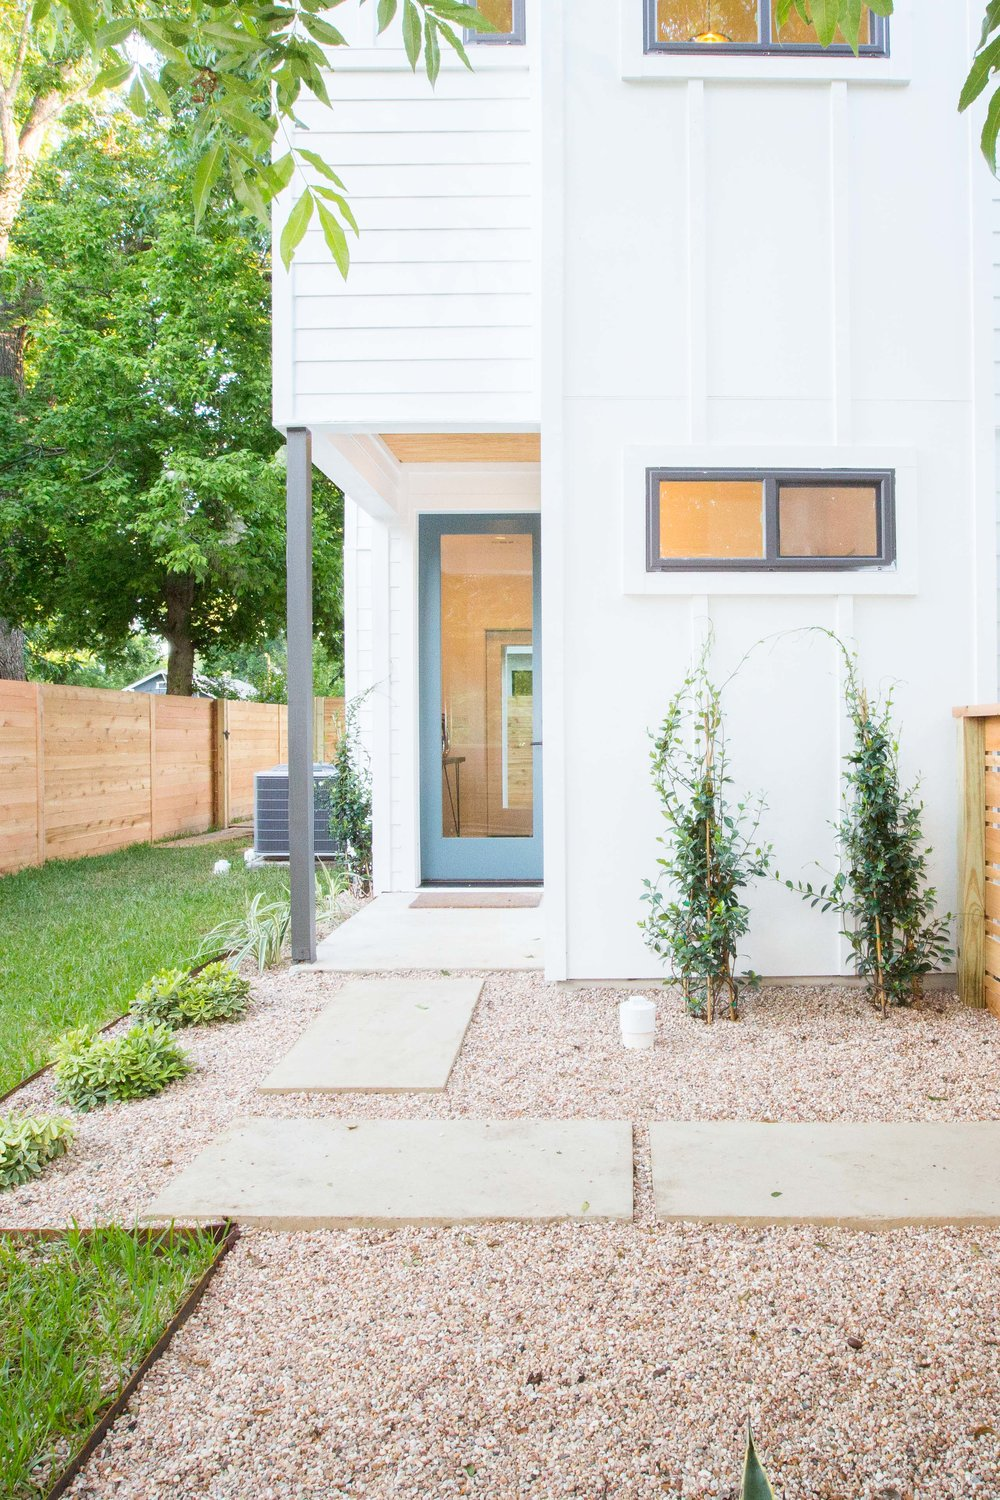 2504_WillowB_-_East_Austin_Alley_House_Modern_Cottage-9661[1].jpg